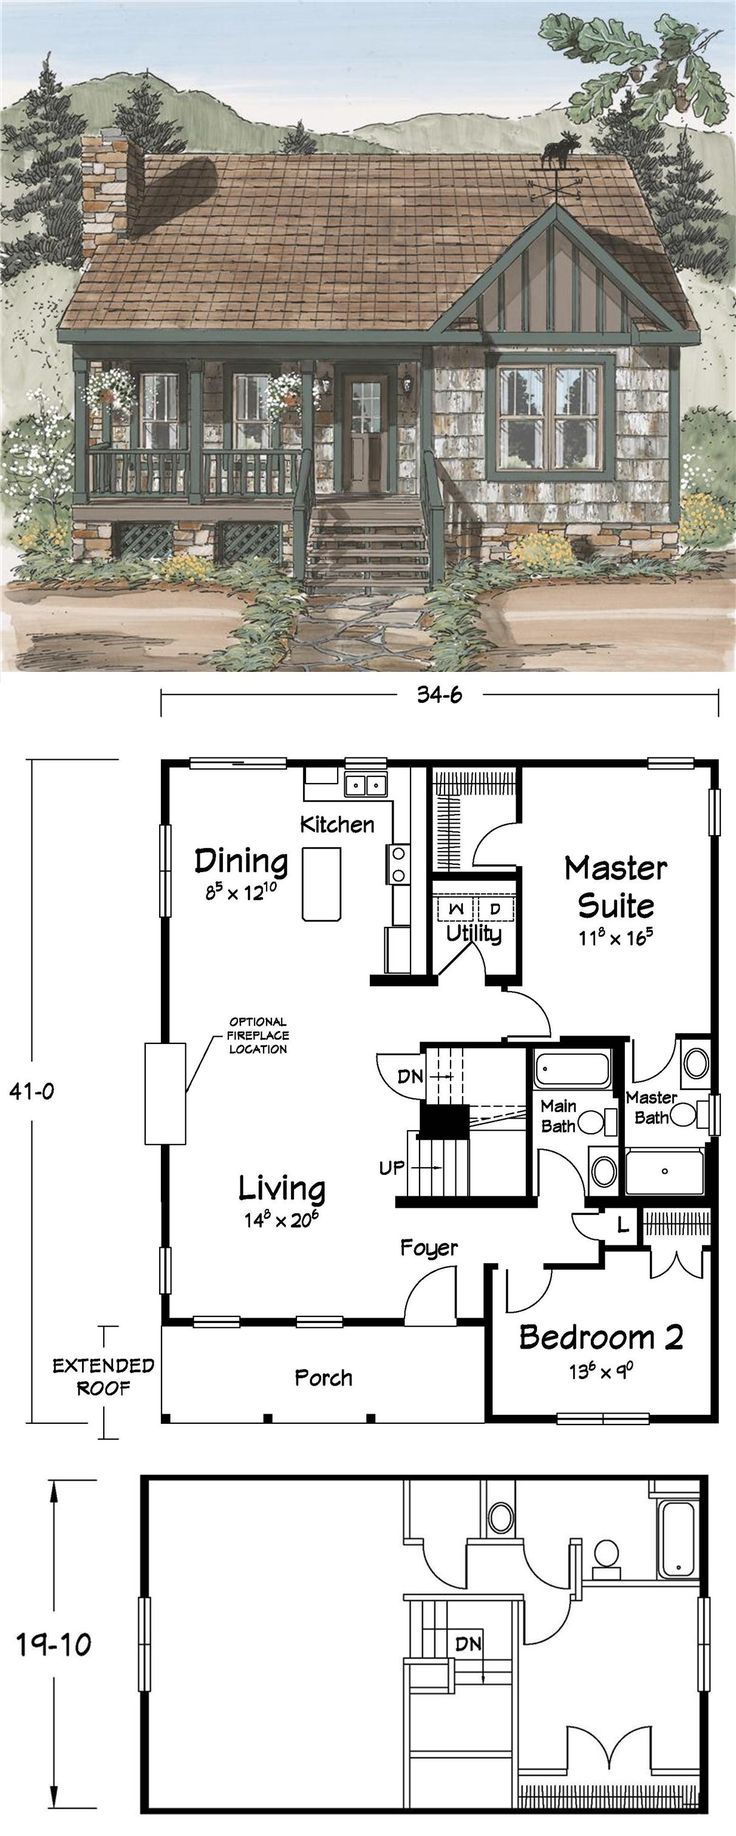 Cute floor plans tiny homes pinterest cabin small for Small cabin floor plans free